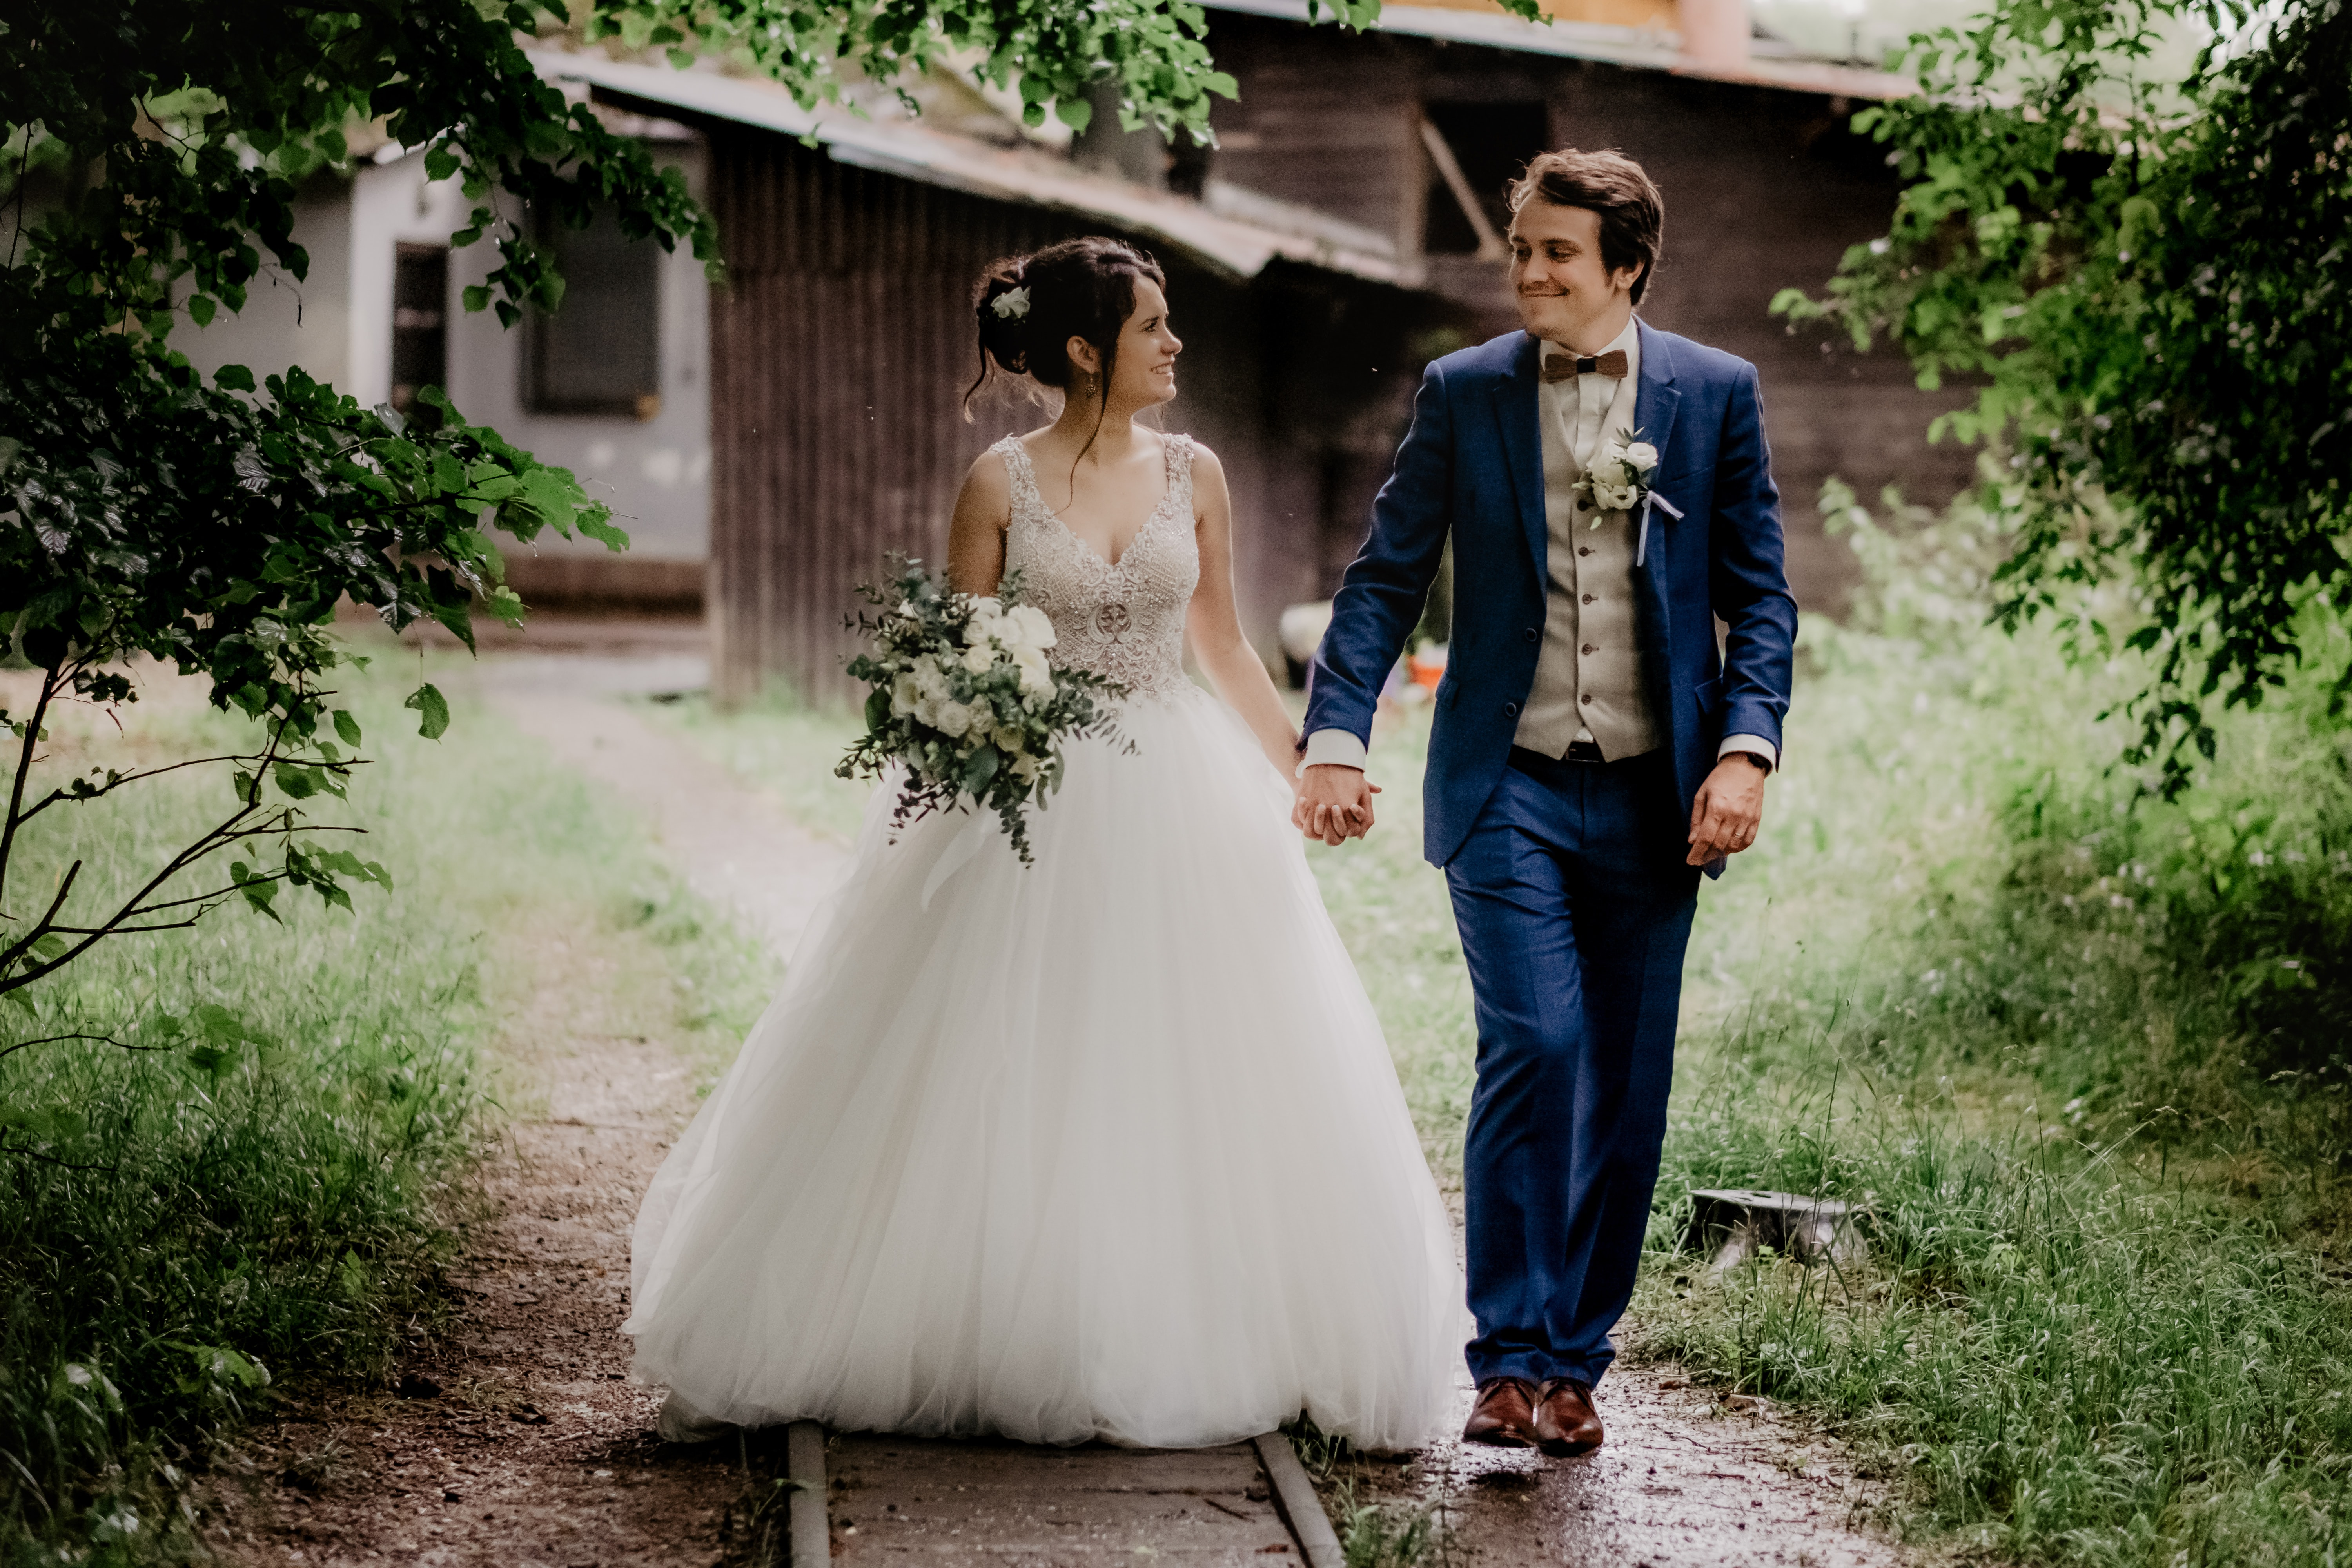 How to Find the Best Wedding Photographer in Austin